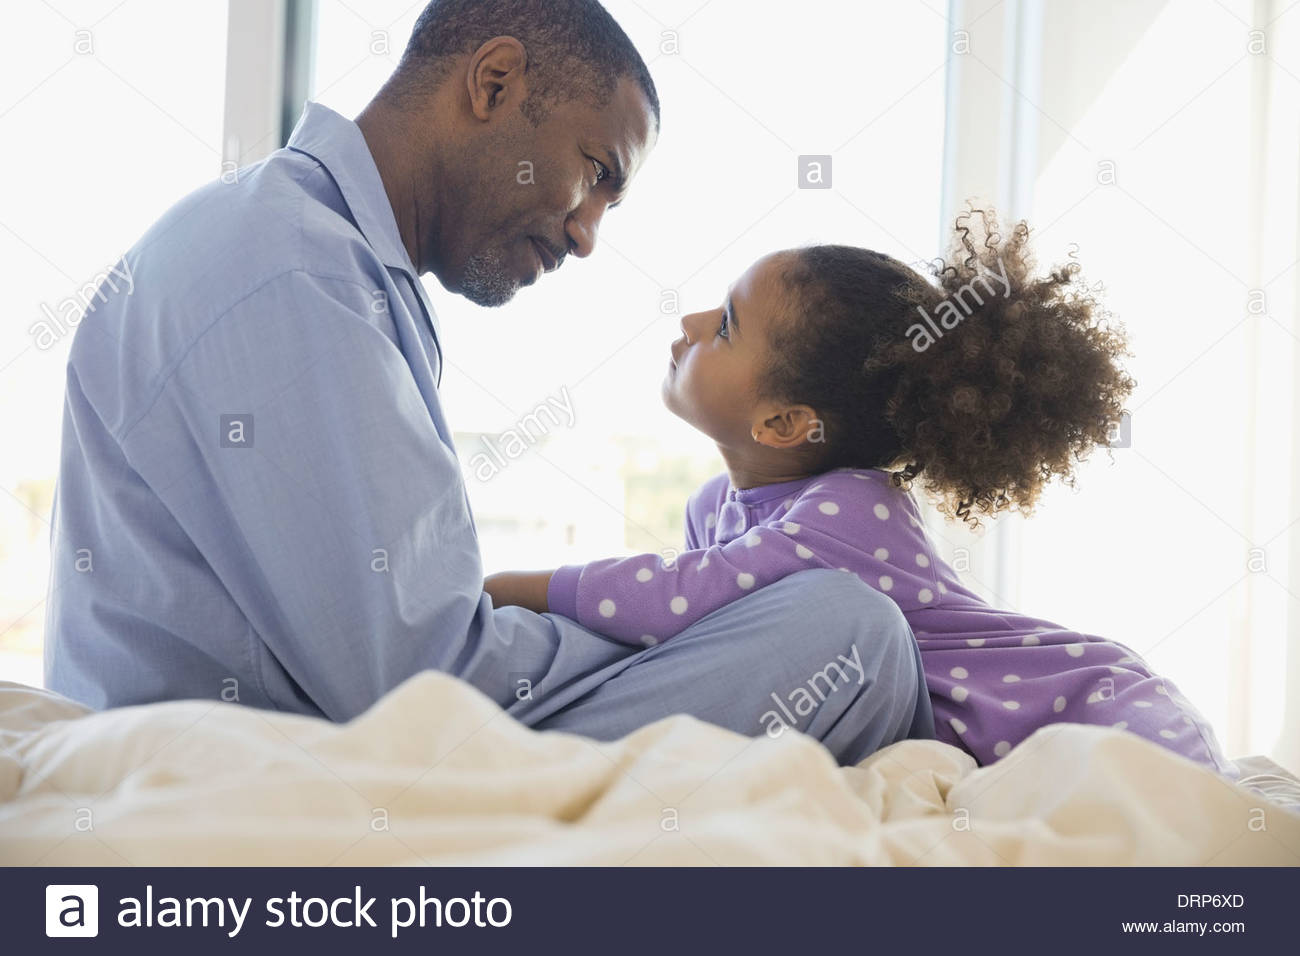 Father and daughter looking at each other - Stock Image